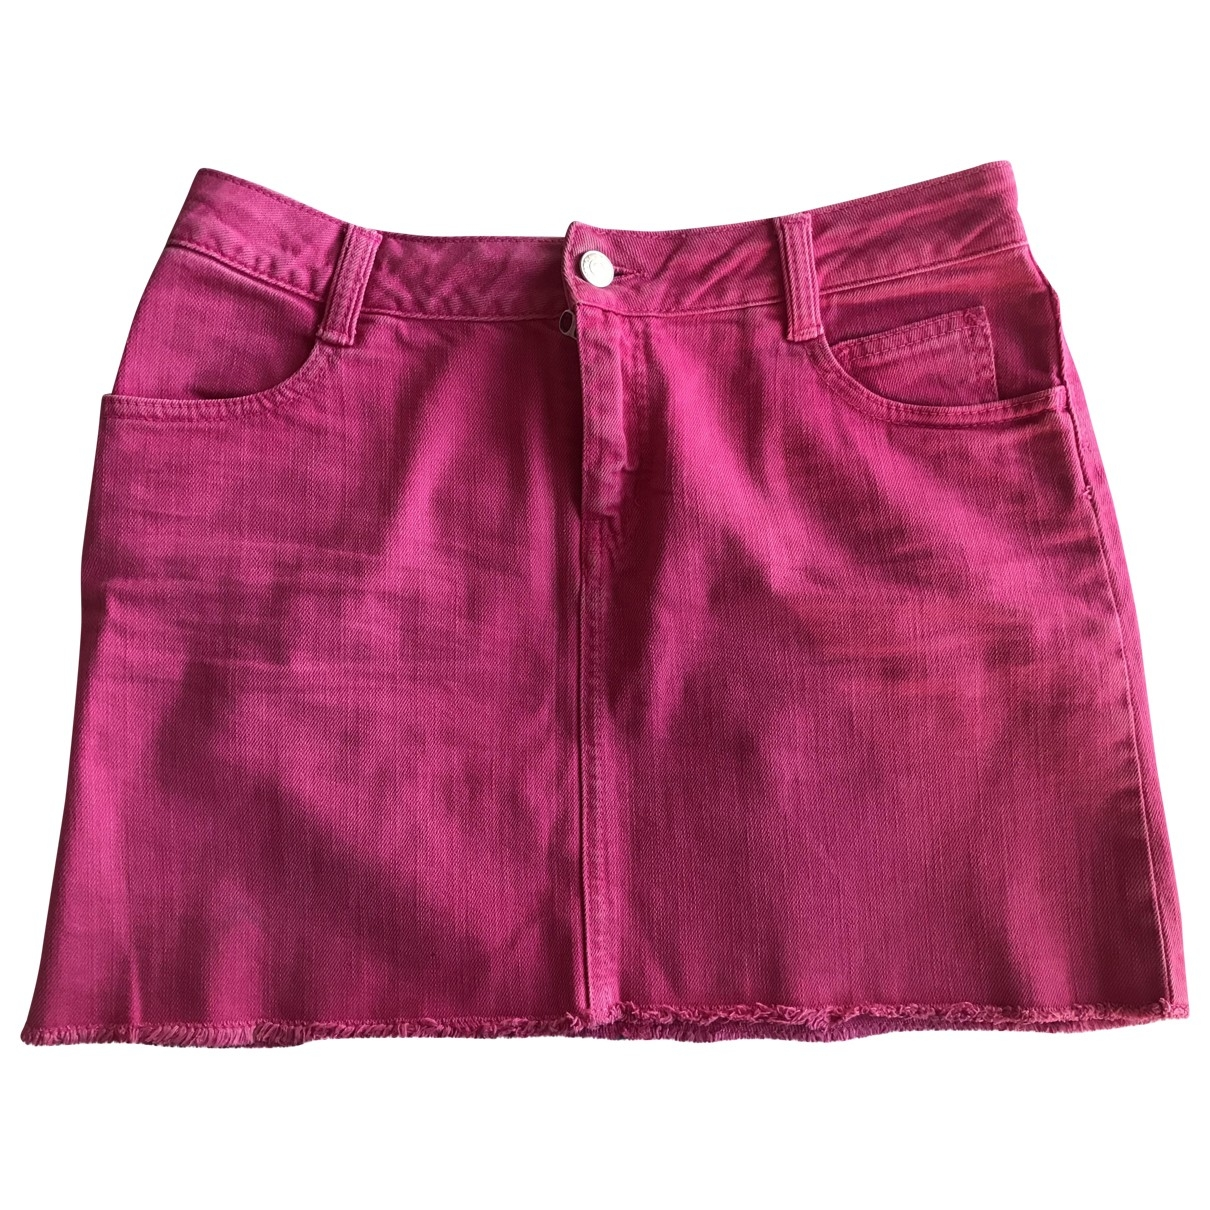 Zadig & Voltaire \N Pink Denim - Jeans skirt for Women 36 FR